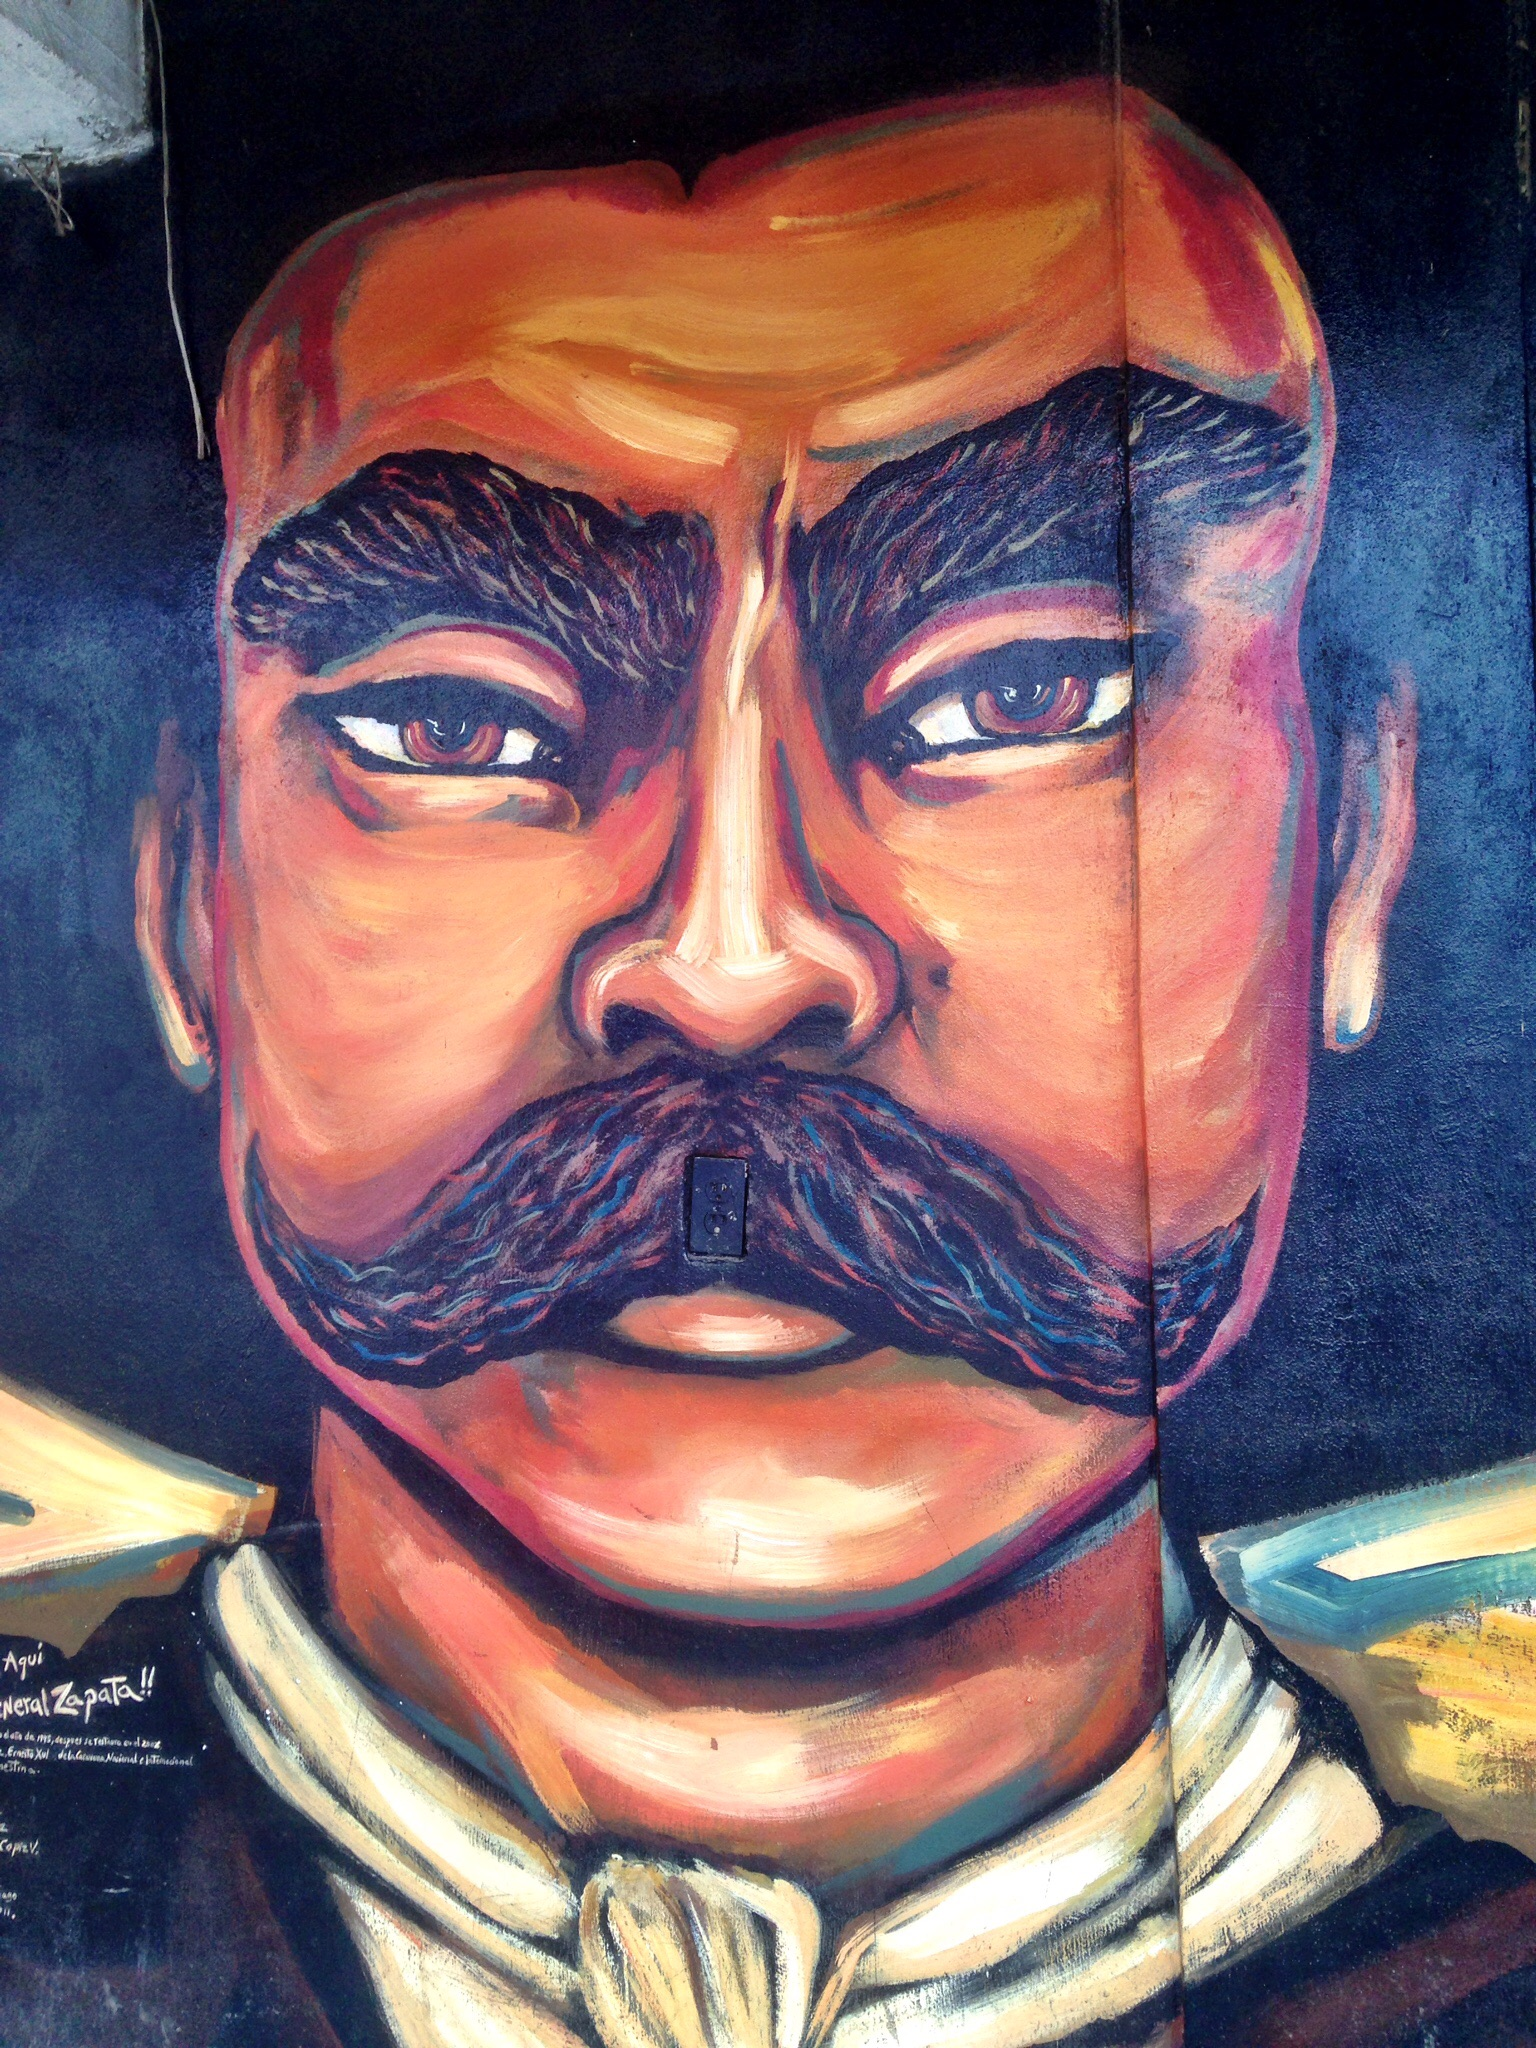 A visit to a zapatista community oventic e2 travel for Emiliano zapata mural